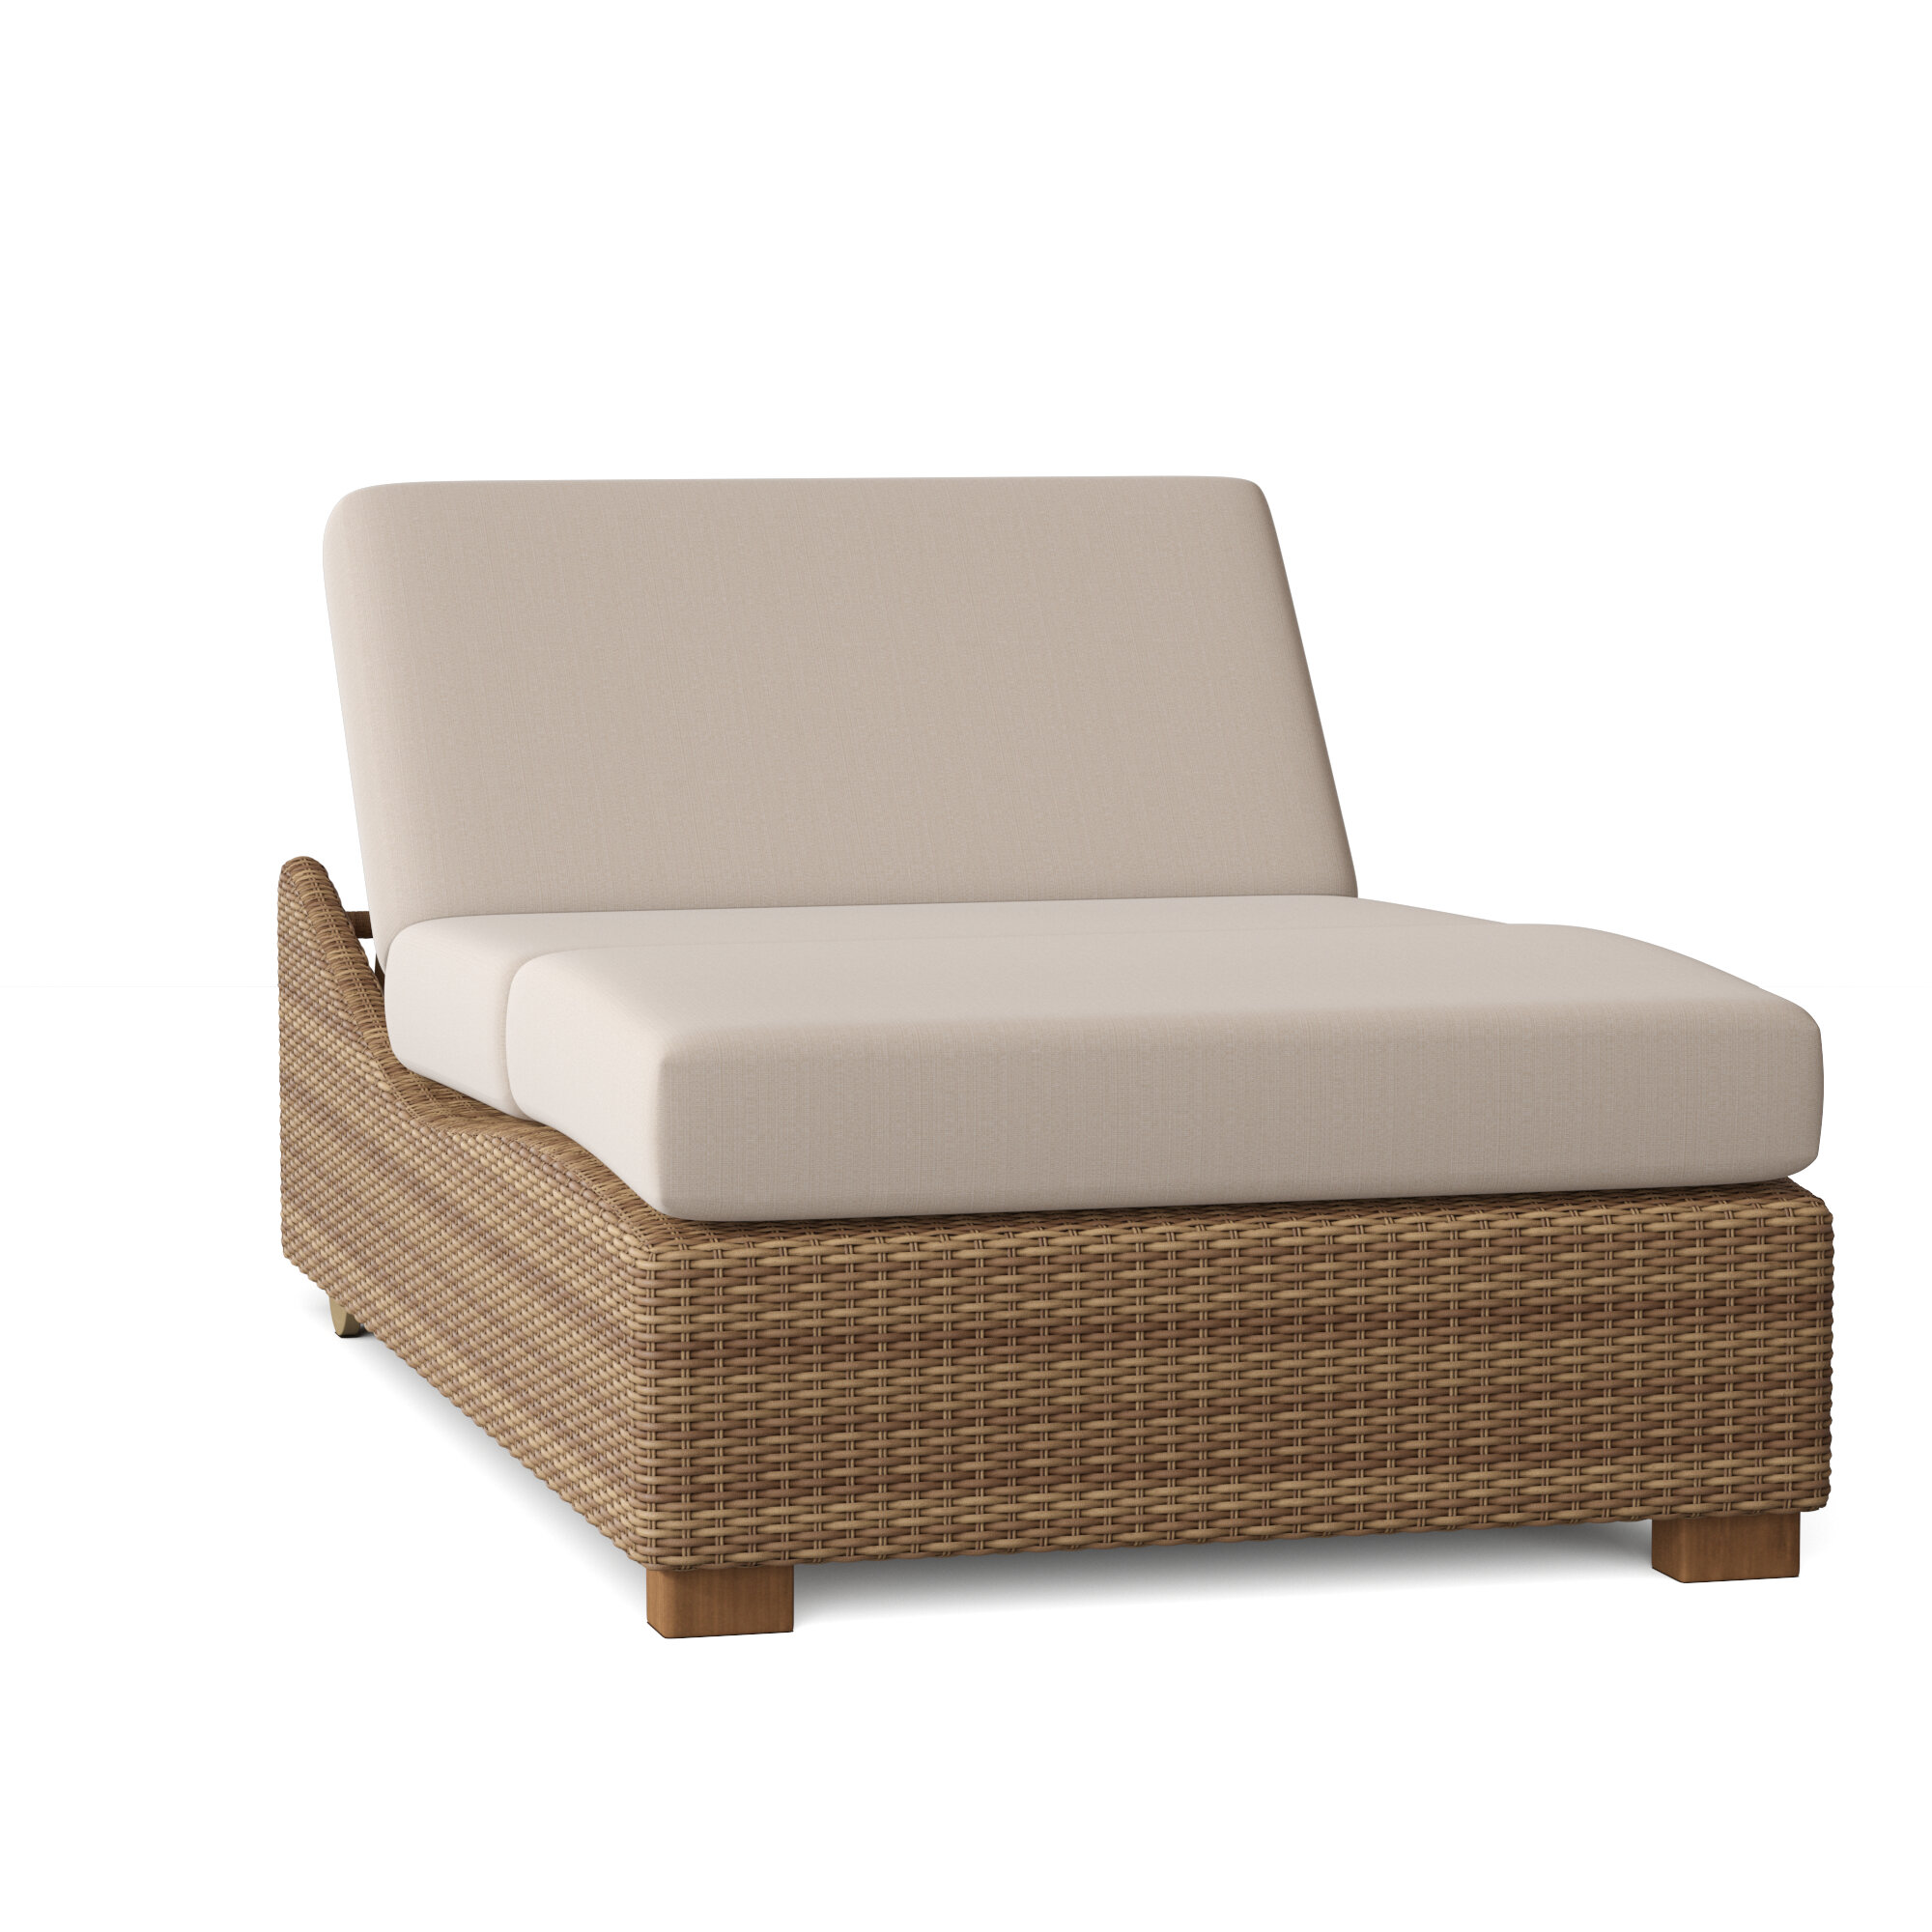 Montecito Double Reclining Chaise Lounge With Cushion